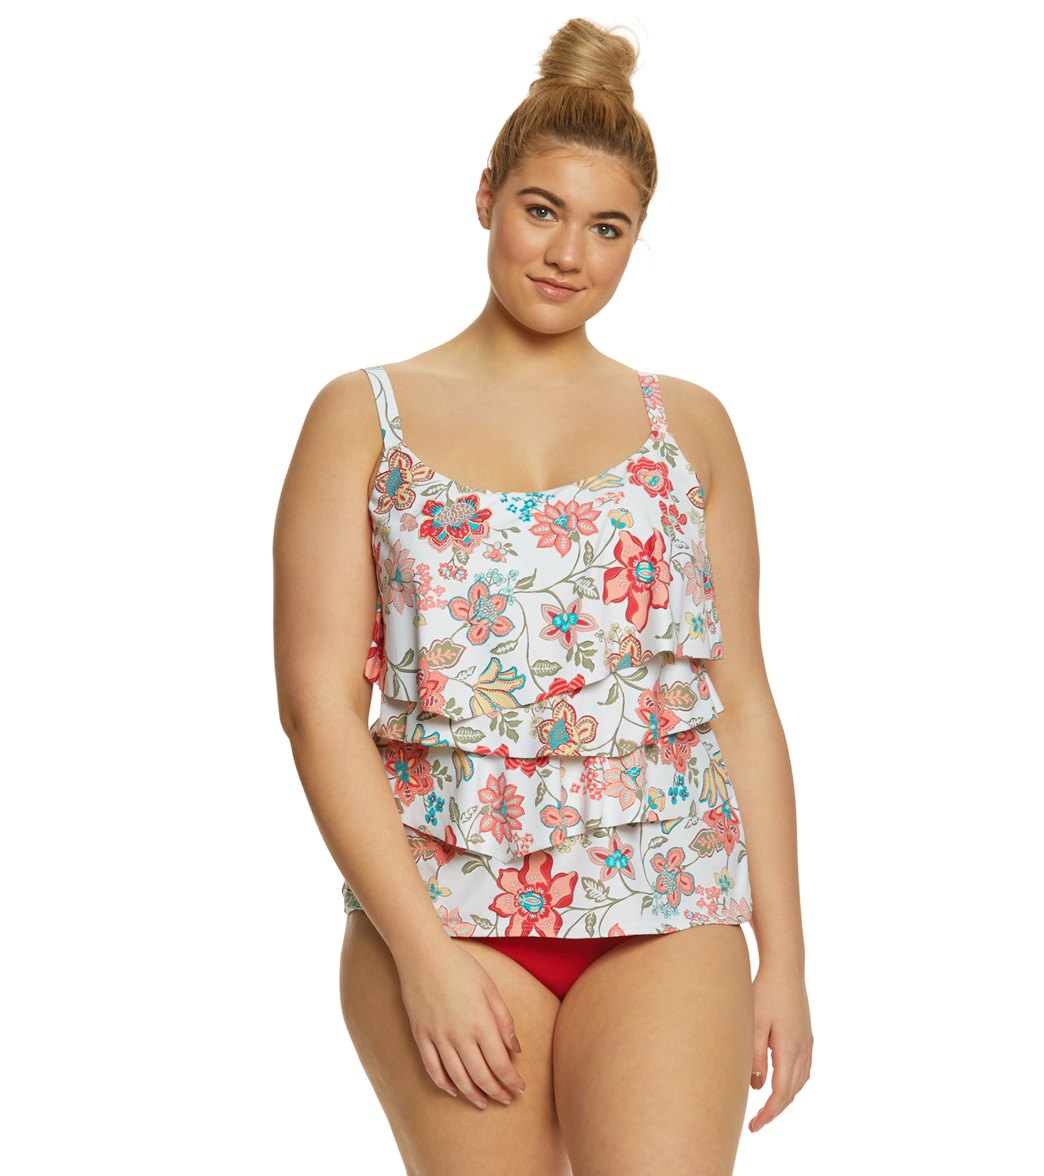 003a5862ce Coco Reef Plus Size Fresno Floral Aura Ruffle Tankini Top at SwimOutlet.com  - Free Shipping